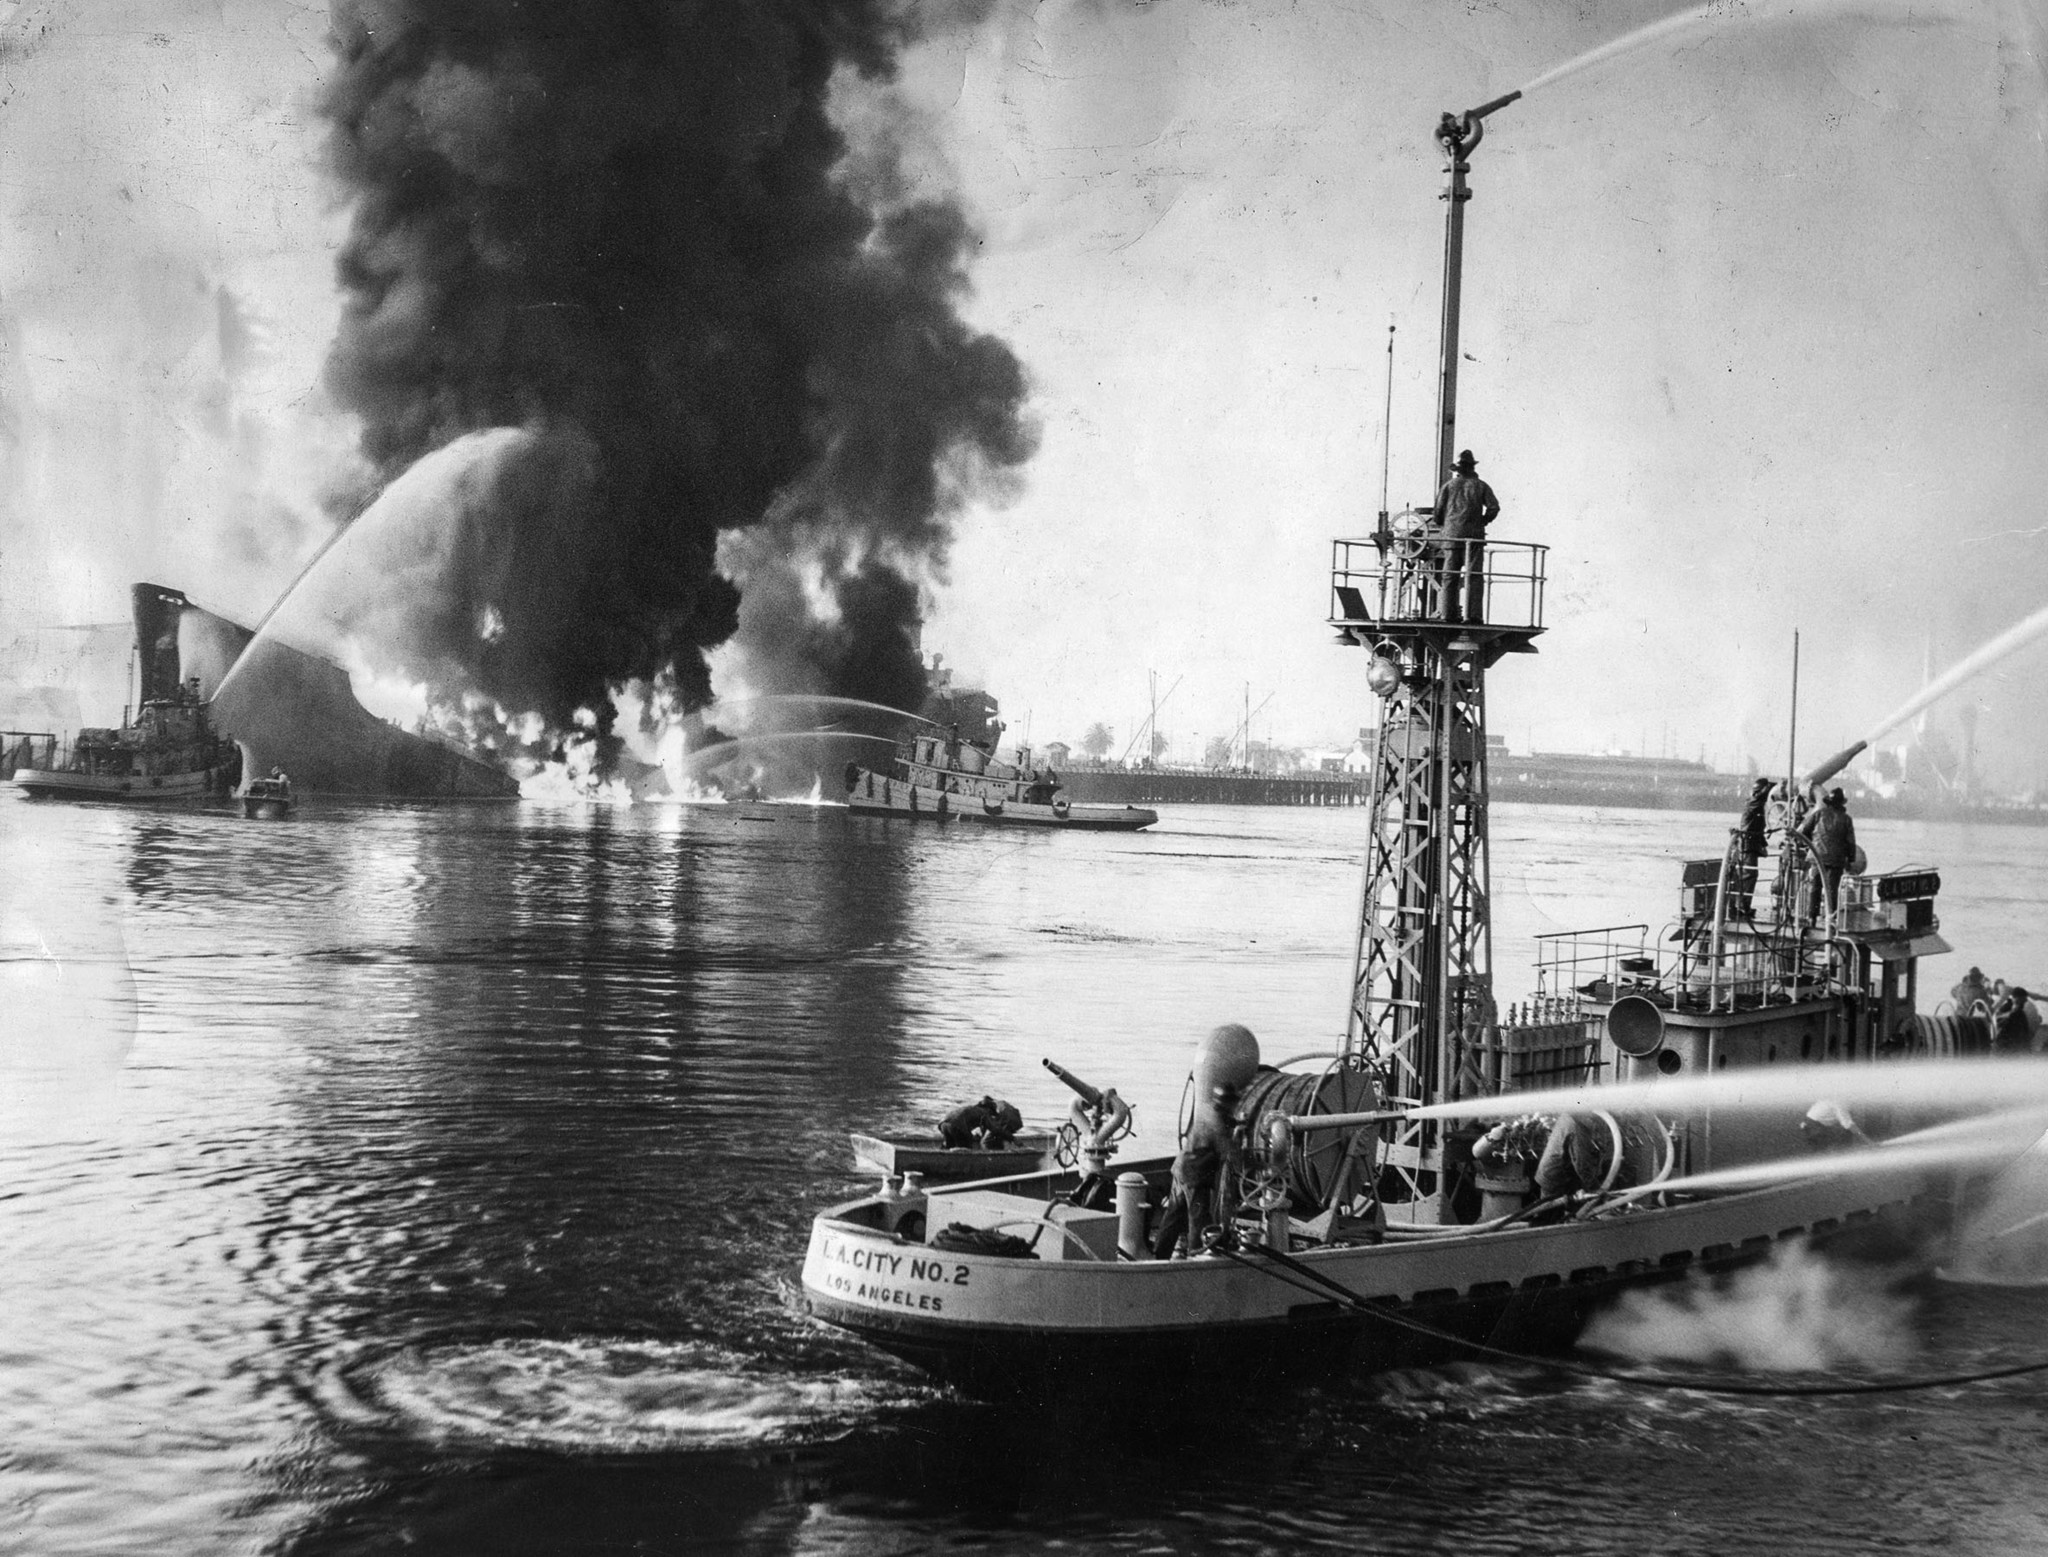 June 22, 1947: Fireboats play streams of water on the burning tanker S.S. Markay, background, after